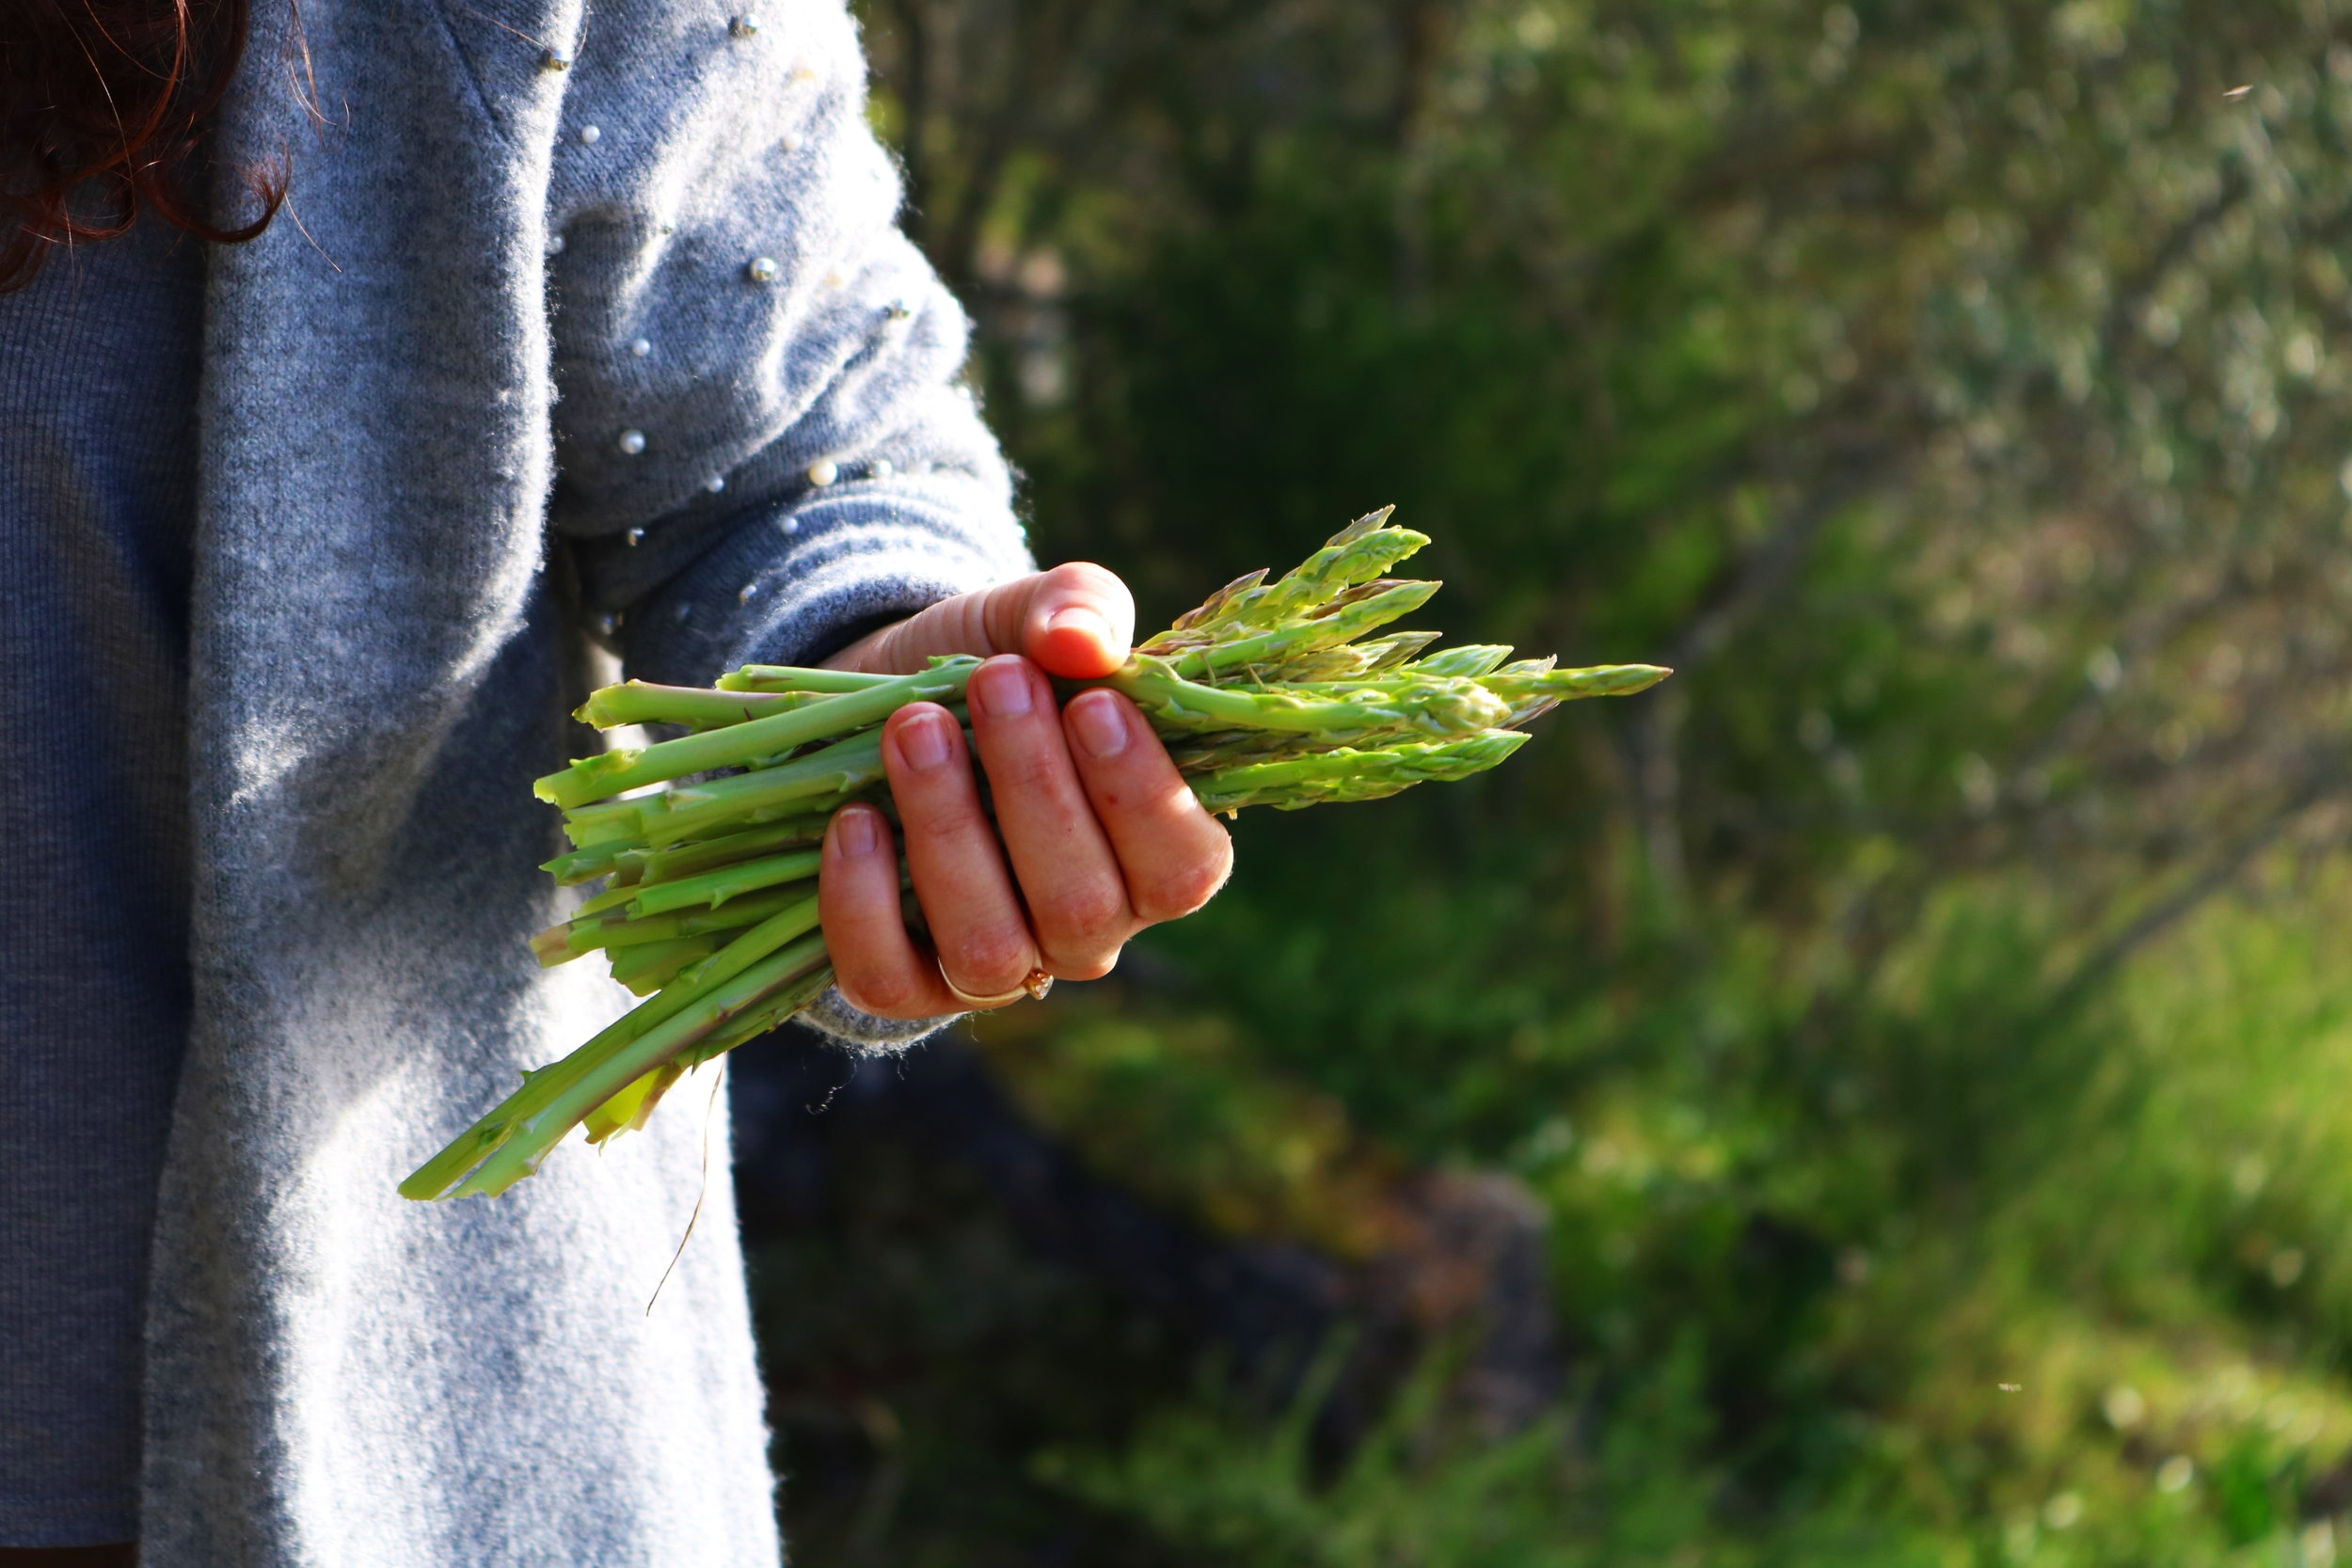 Asparagus is at its peak right now. Enjoy it fresh from local farms and markets.